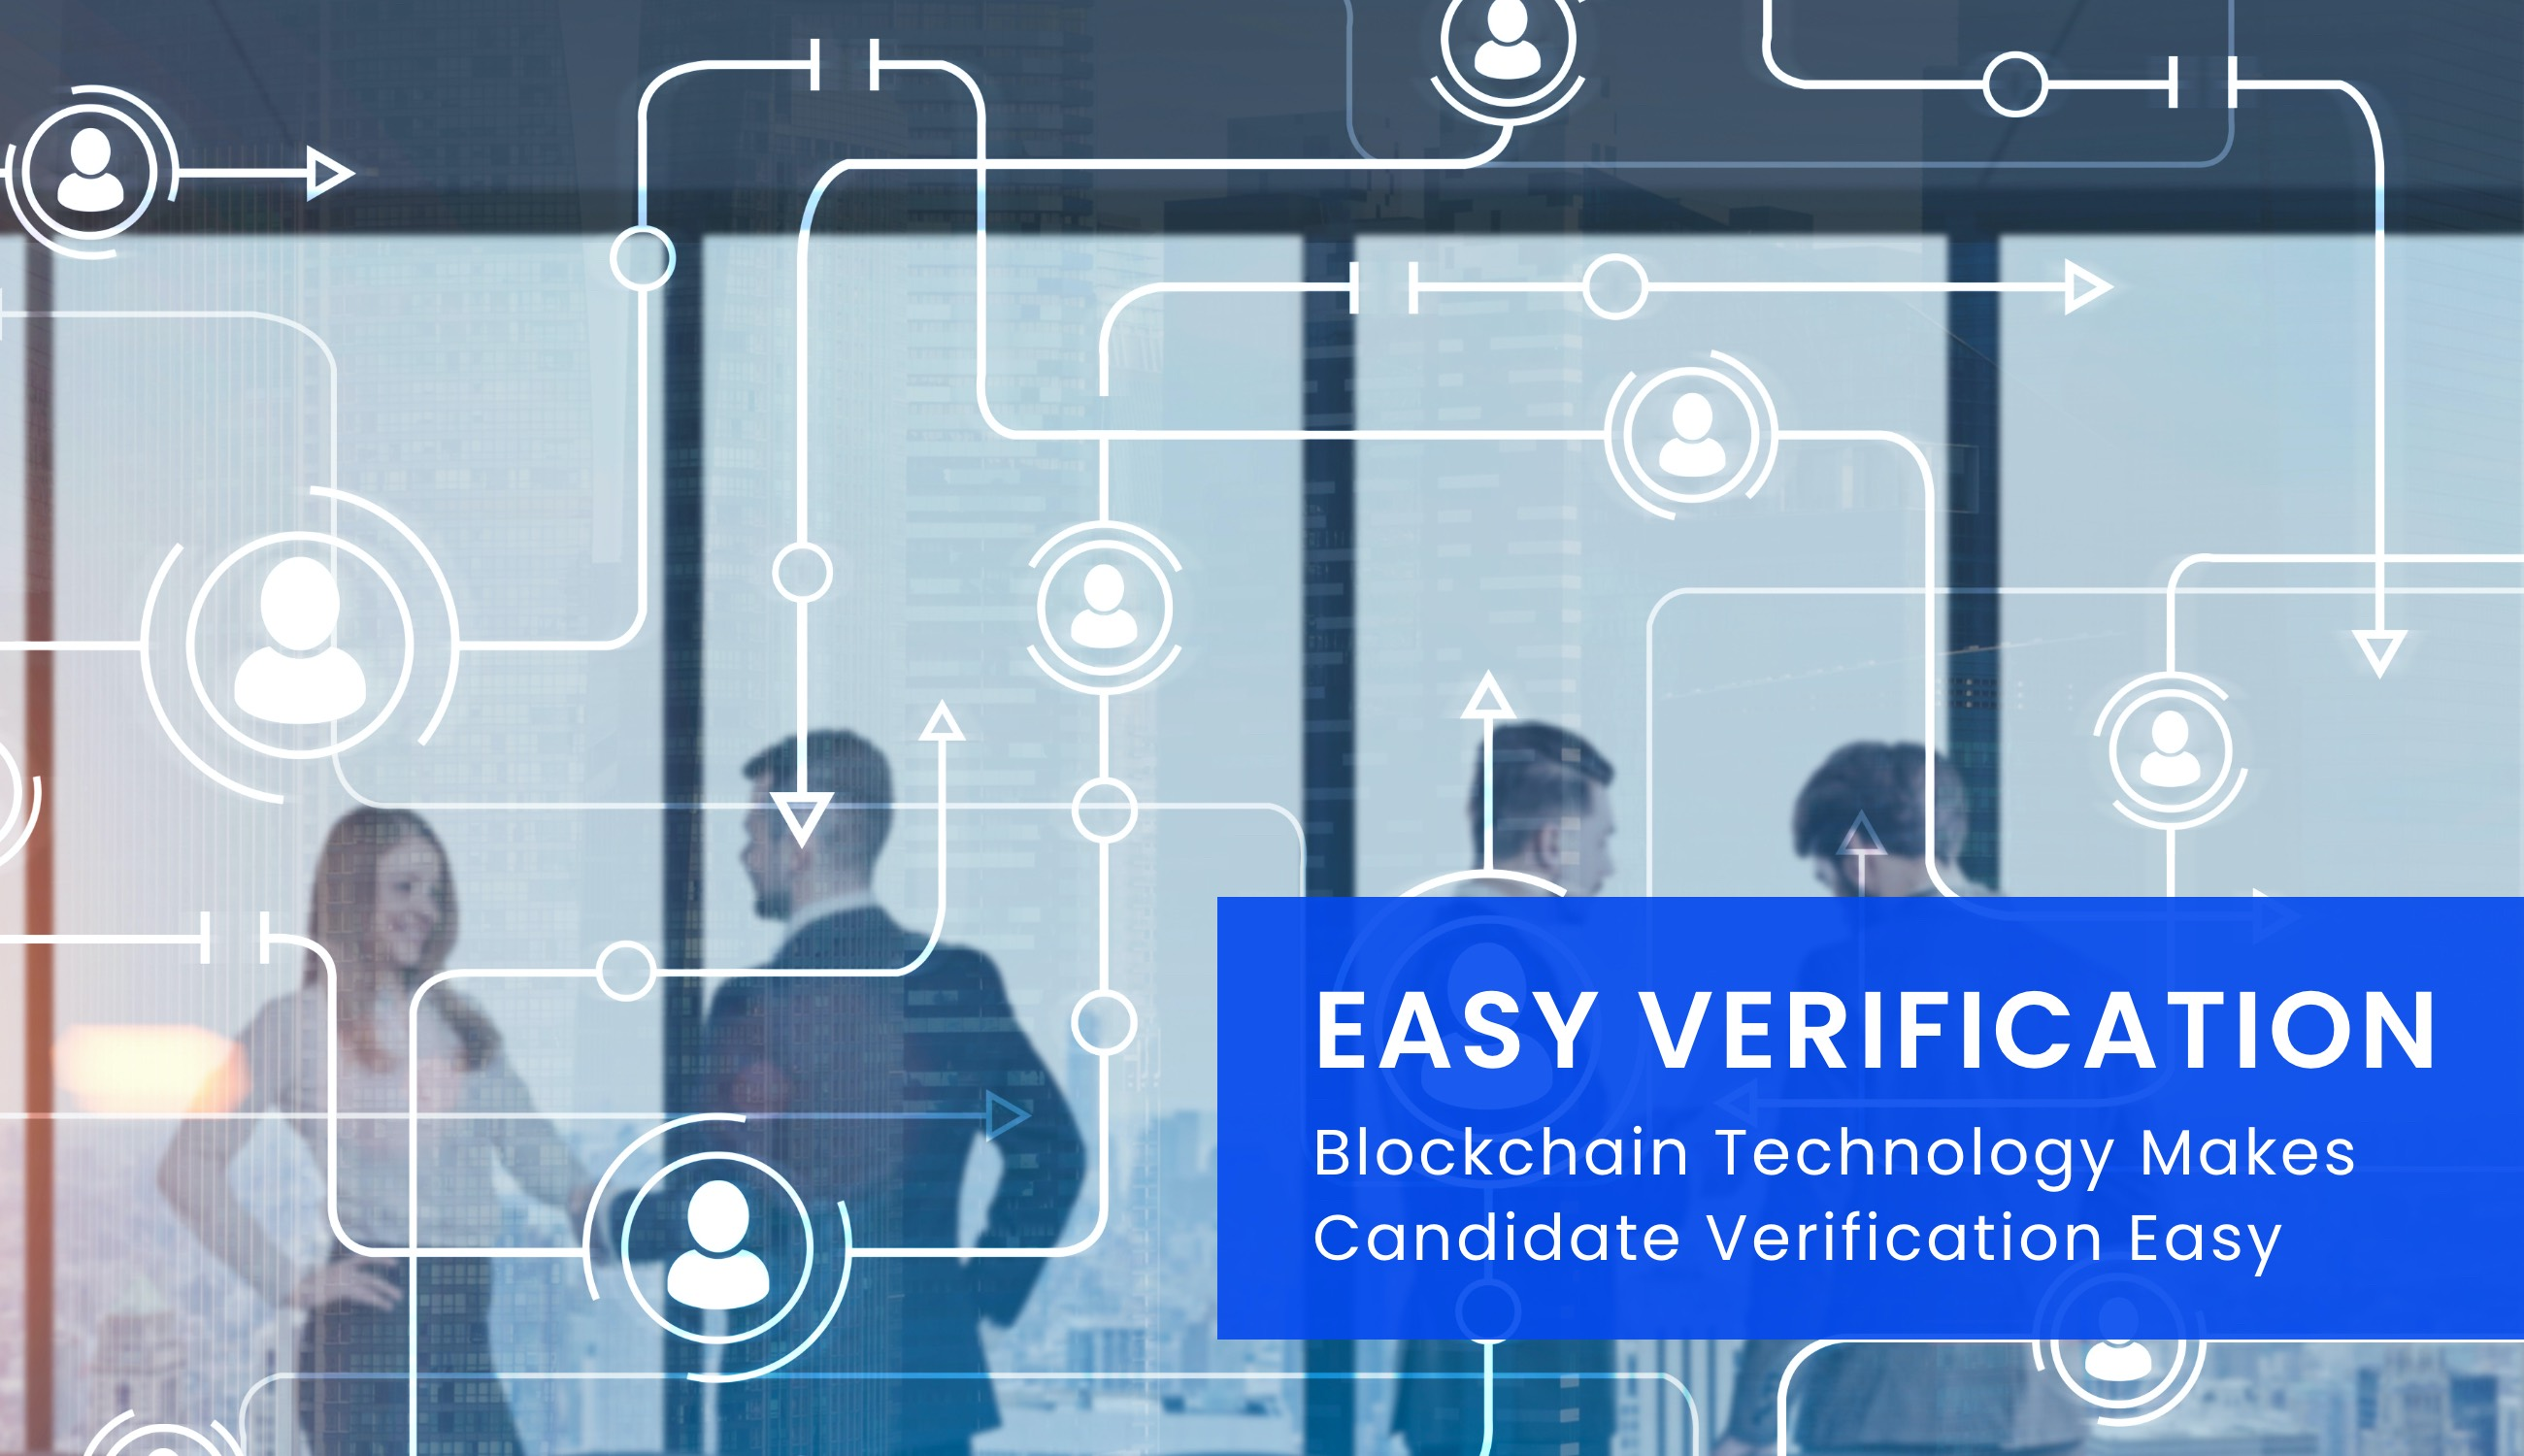 Certificate fraud leads you to hire unqualified professionals. Improve hiring by using digital certificates and blockchain verification.